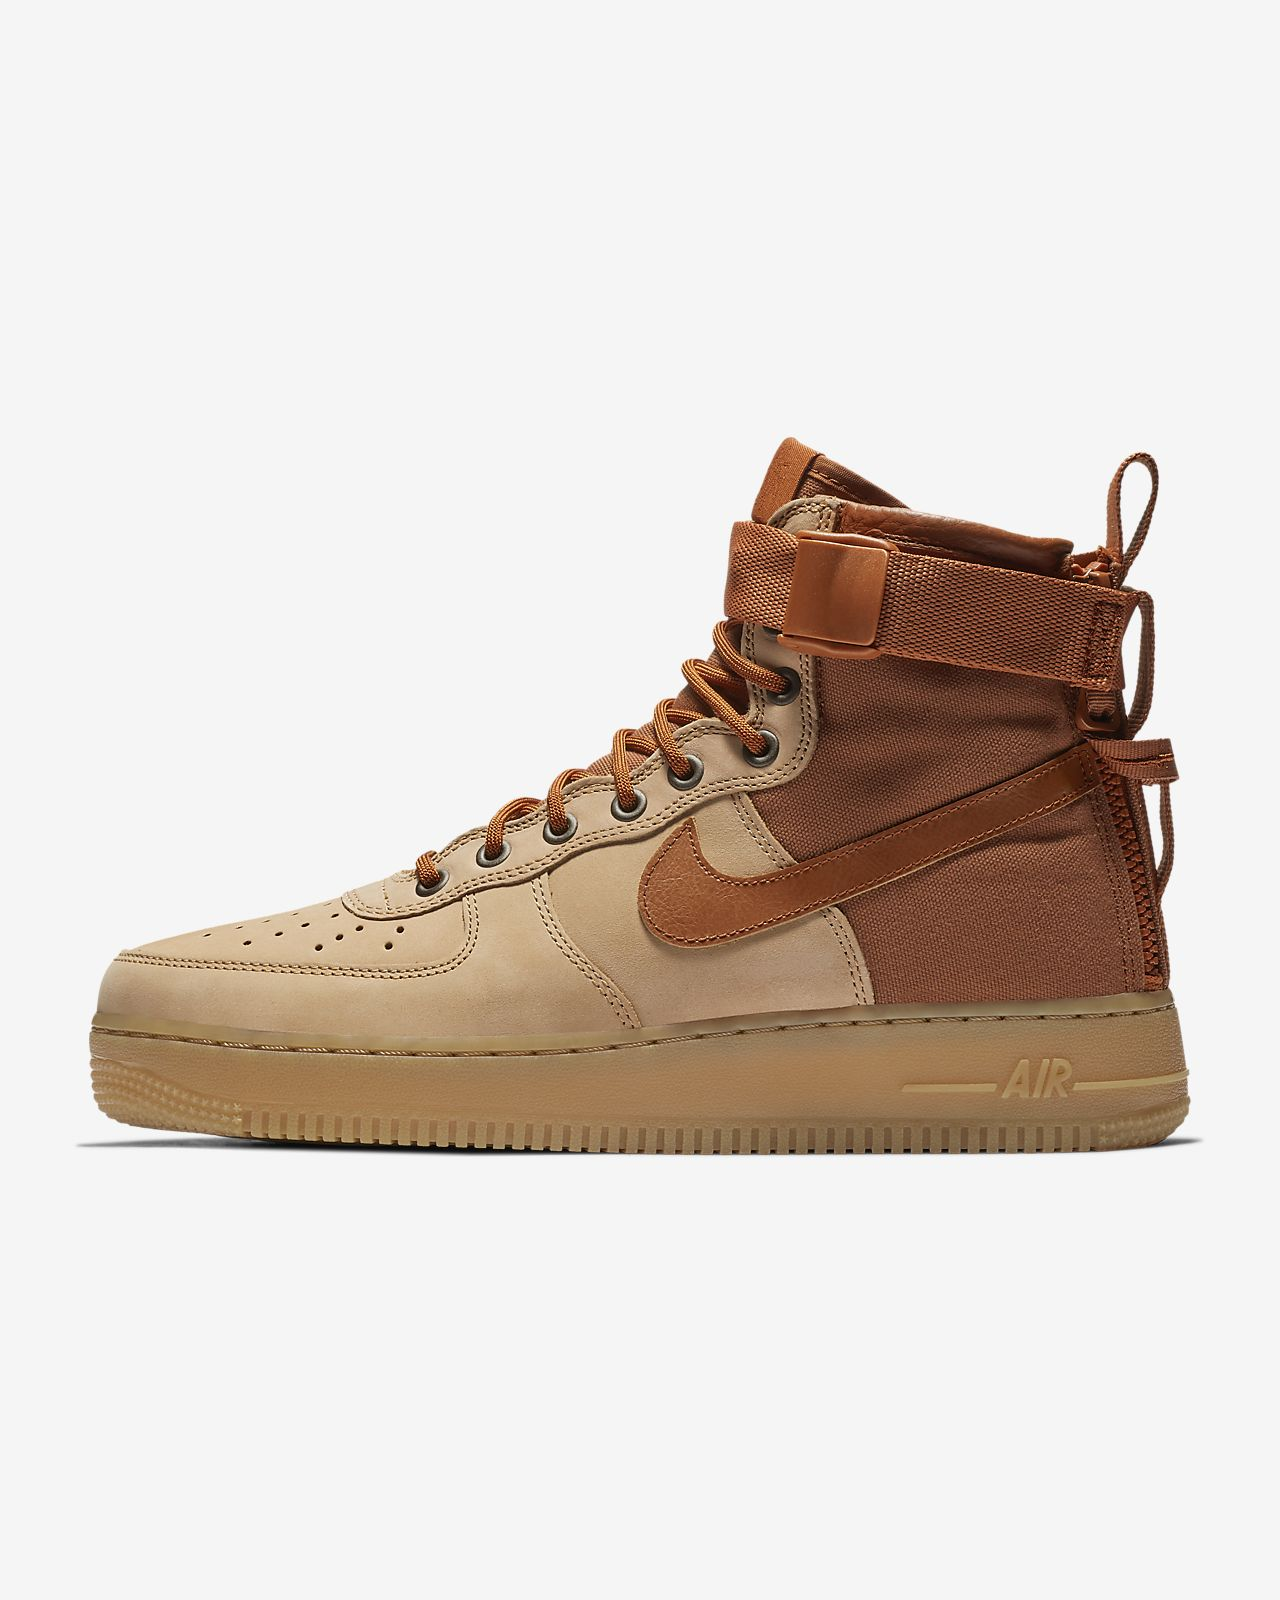 b2626a127c427e Nike SF Air Force 1 Mid Premium Men s Shoe. Nike.com CA